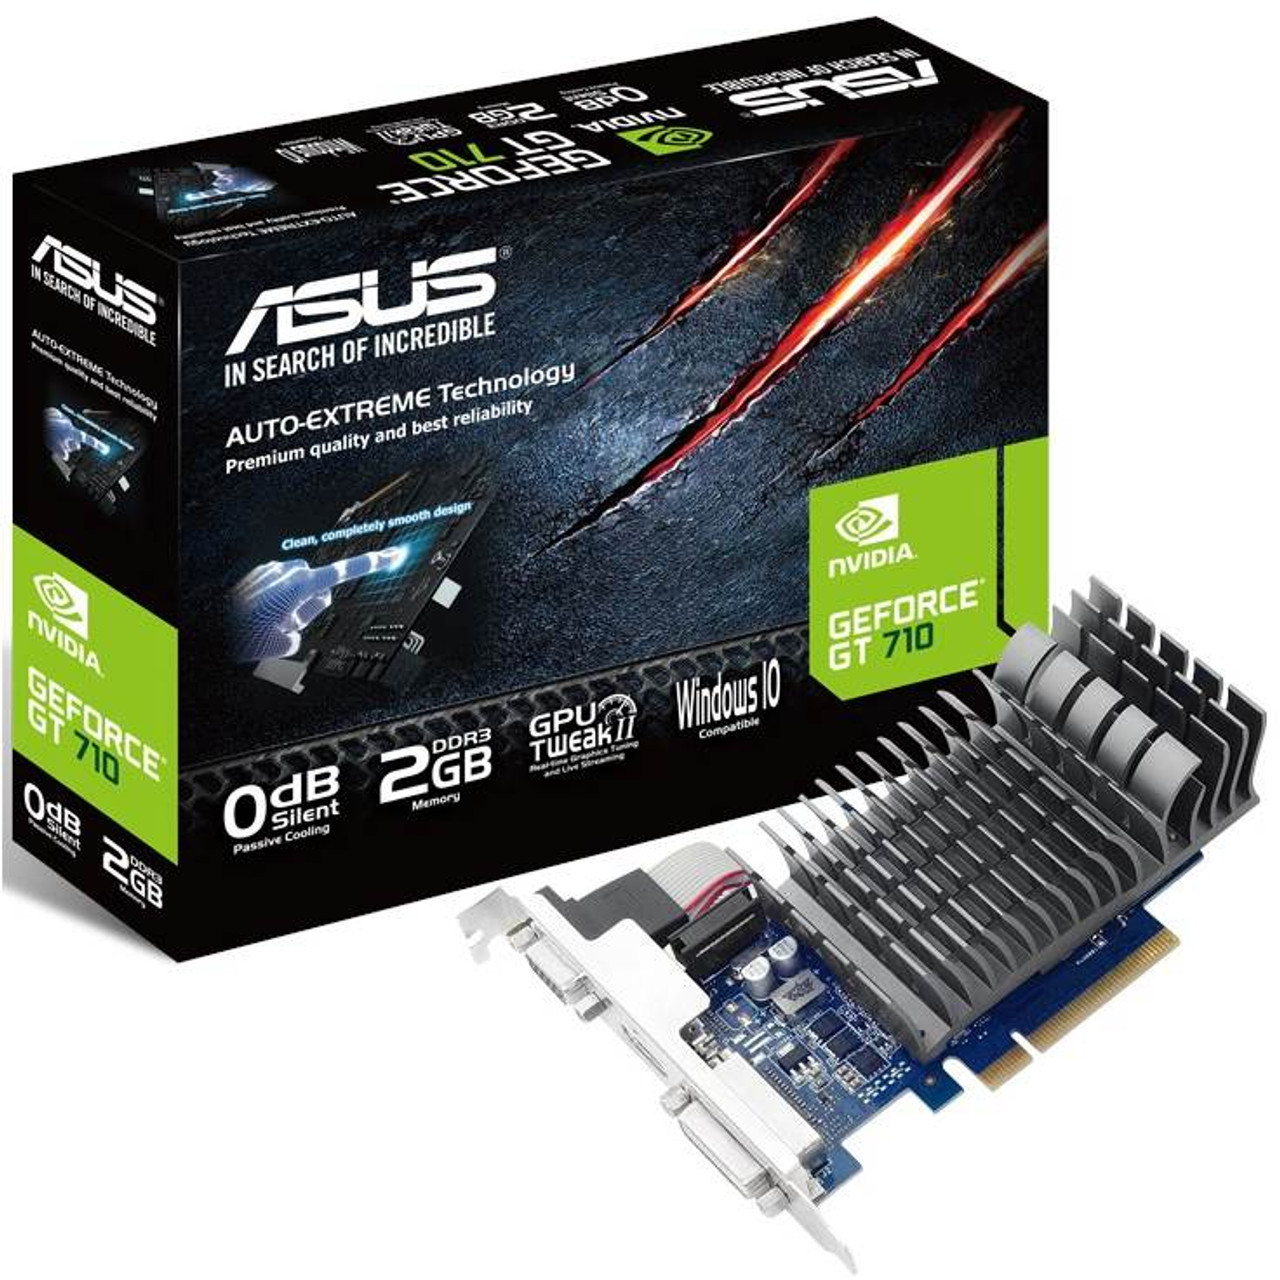 Image for Asus GeForce GT 710 2GB Silent Video Card CX Computer Superstore